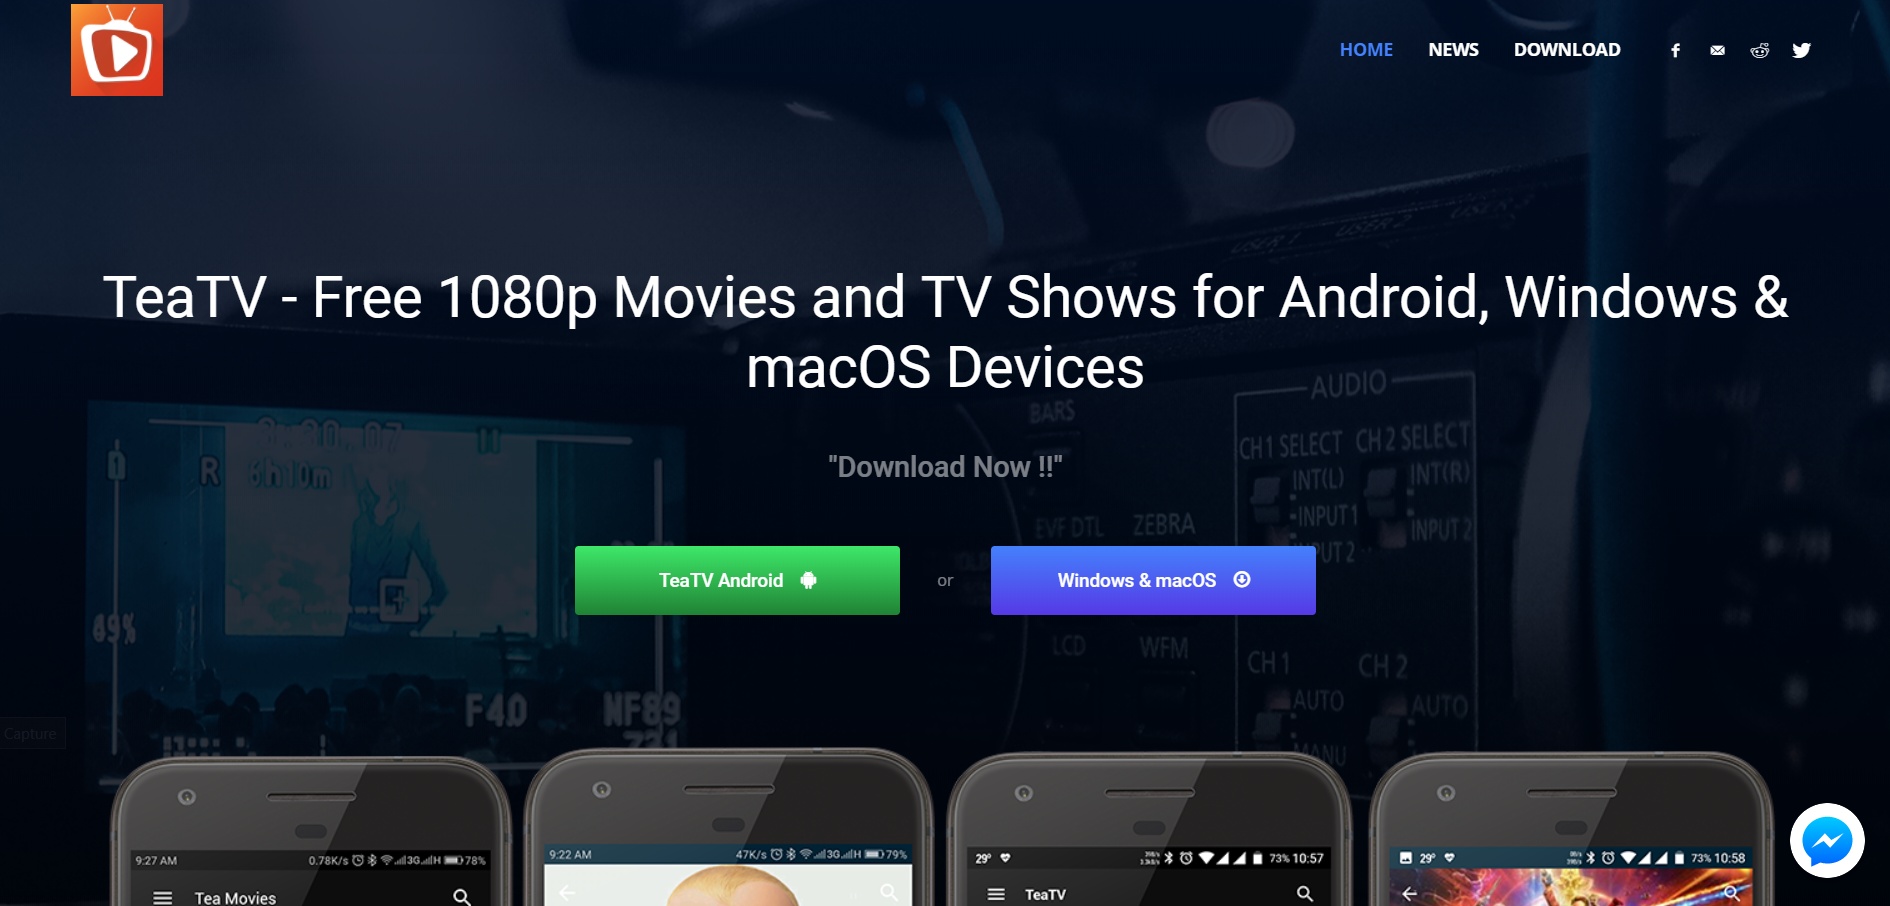 Full Guide: How To Download TeaTV Apk App On Android, FireTV